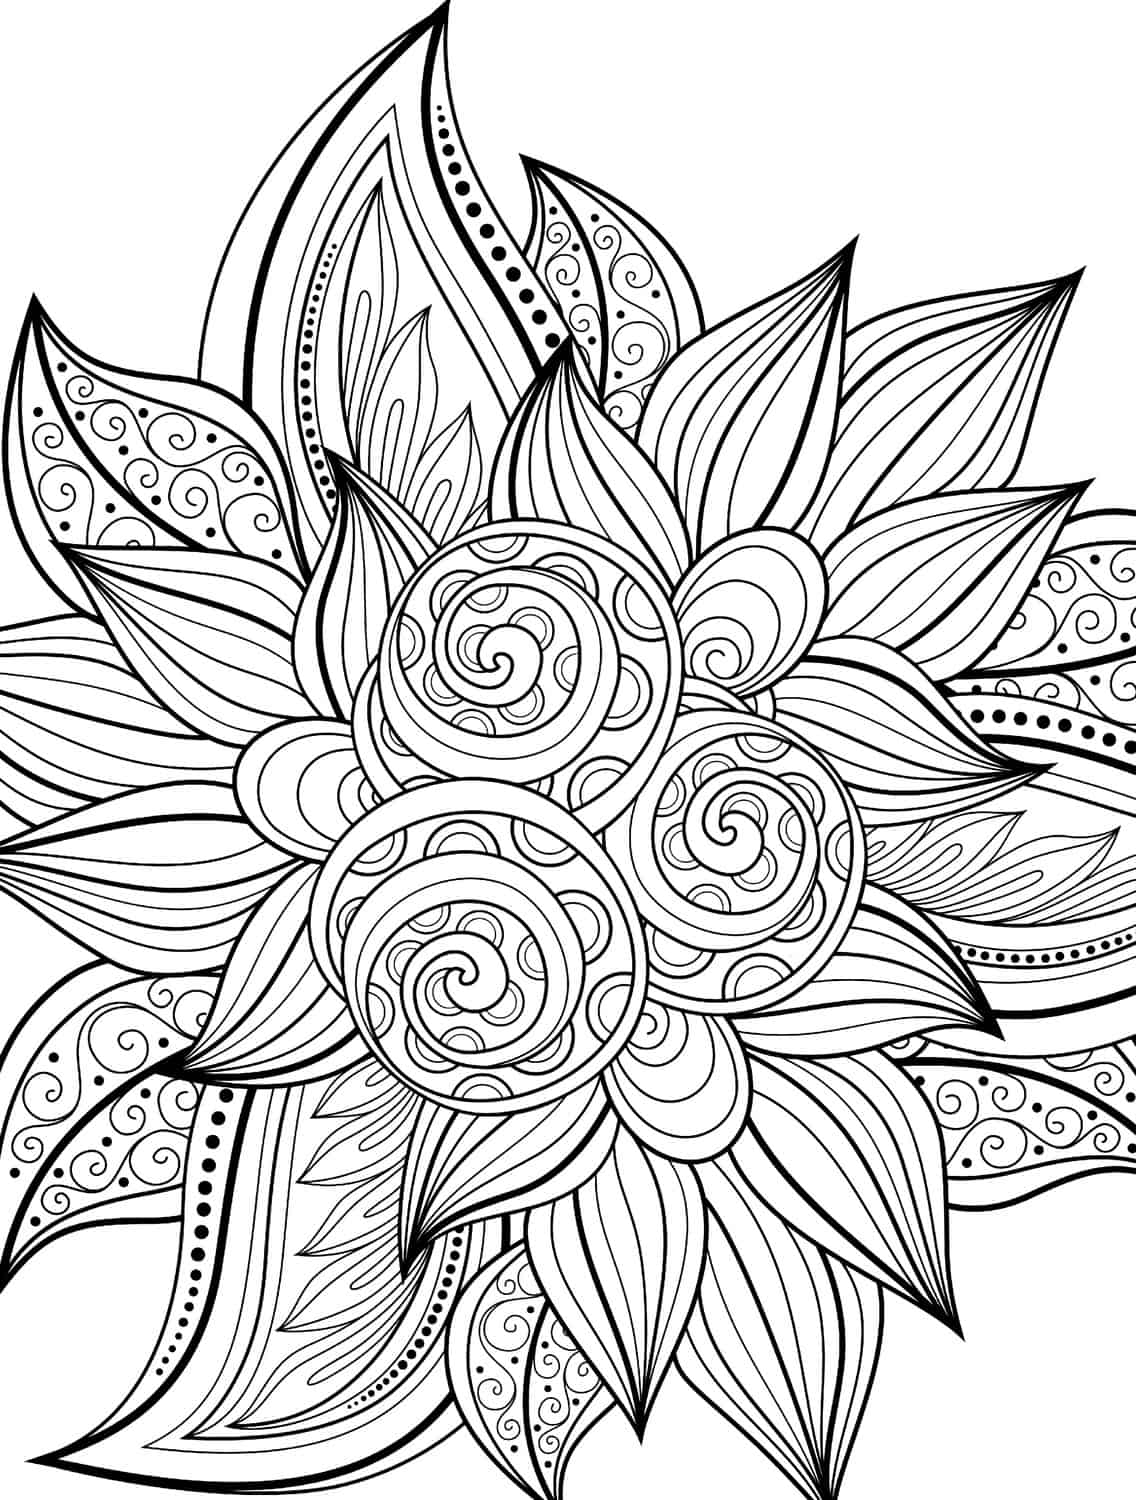 10 free printable holiday adult coloring pages for Ten coloring page